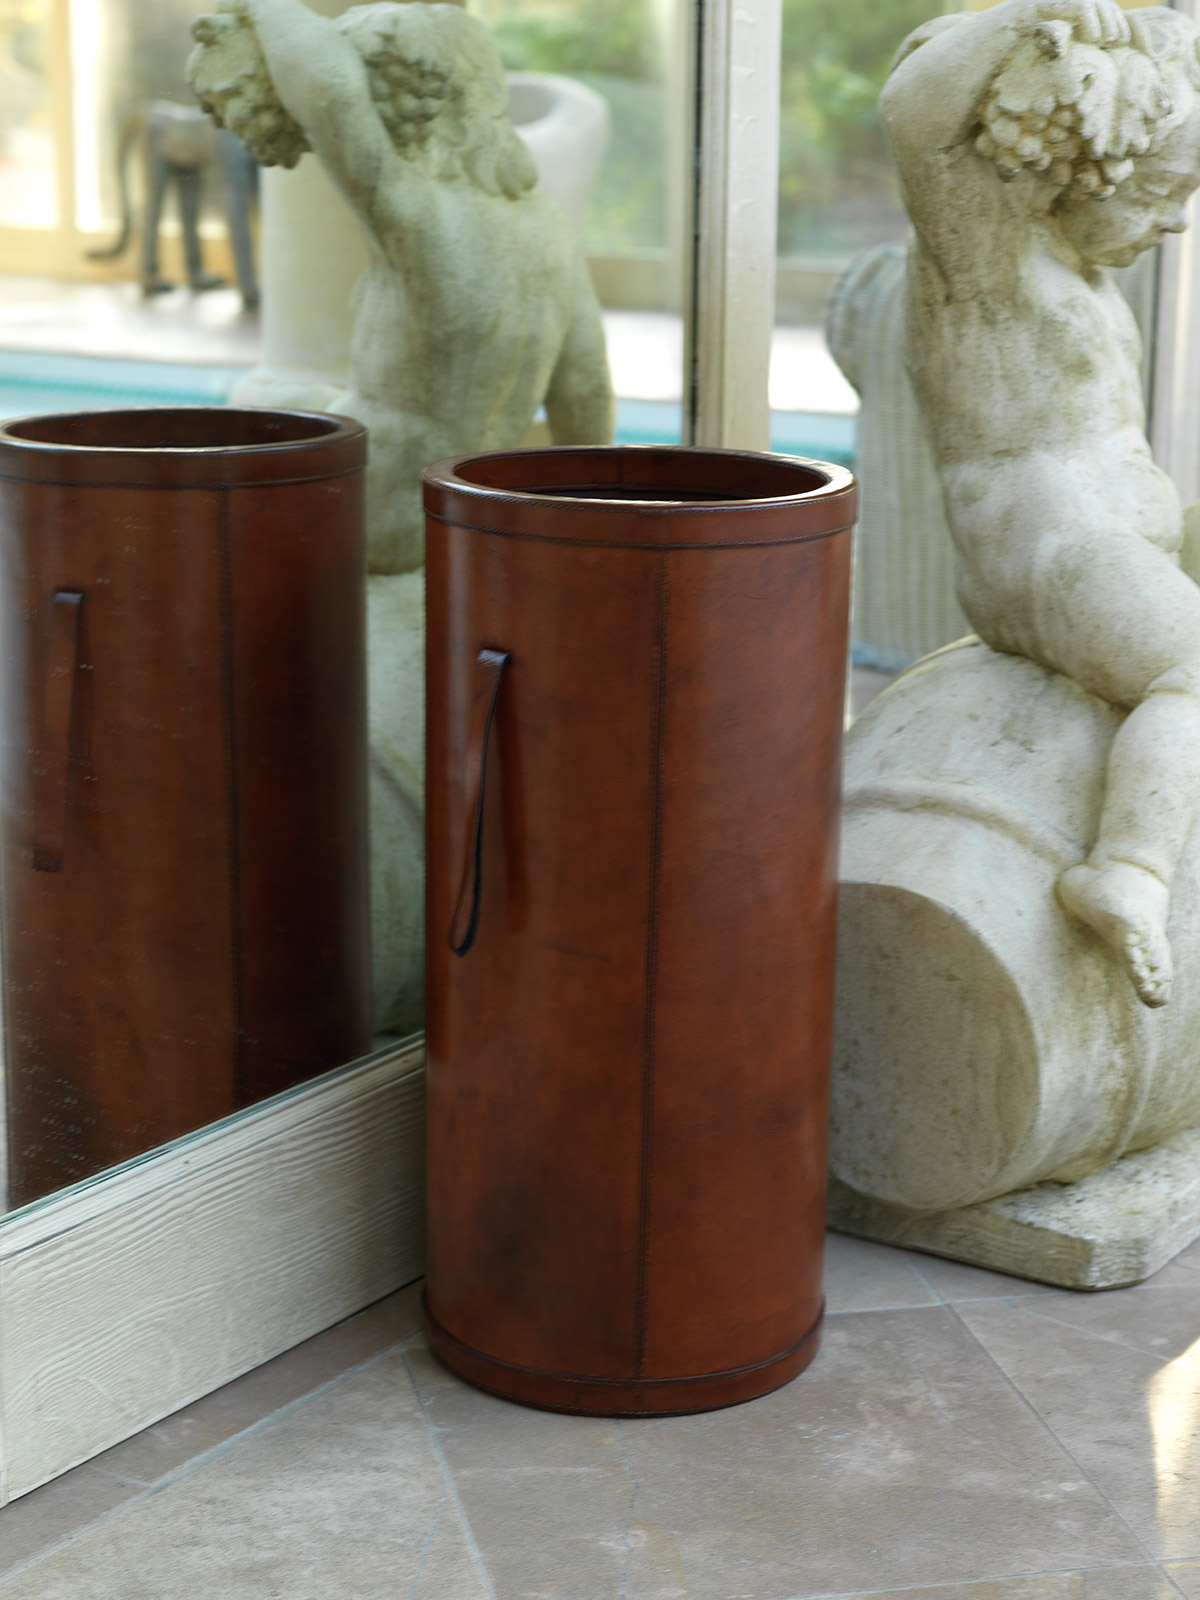 Leather Brown Umbrella Stand|Umbrella Basket Holder - Candle and Blue